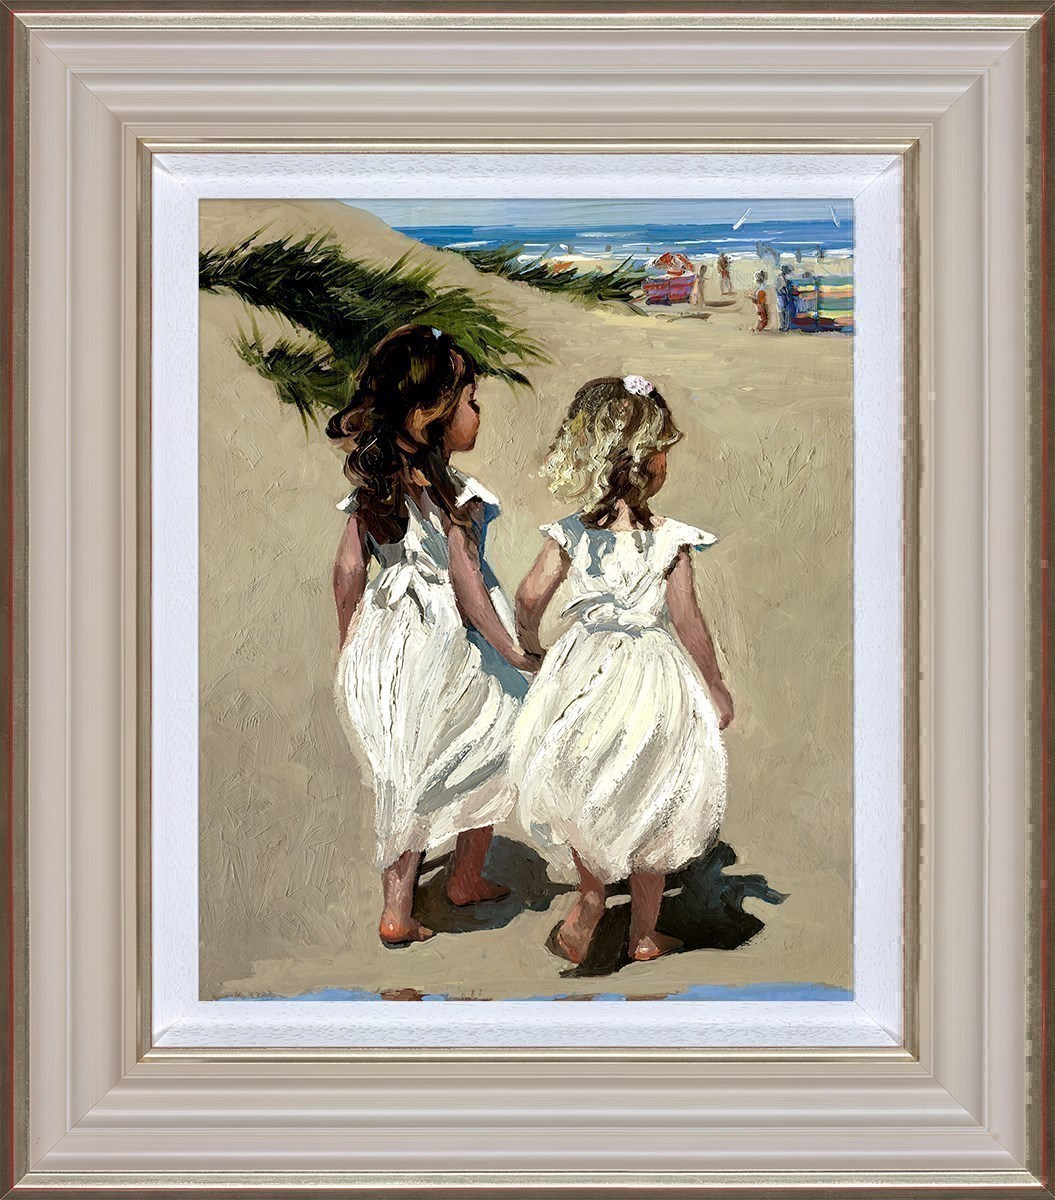 Beach Babies by Sherree Valentine Daines - Canvas on Board sized 12x14 inches. Available from Whitewall Galleries